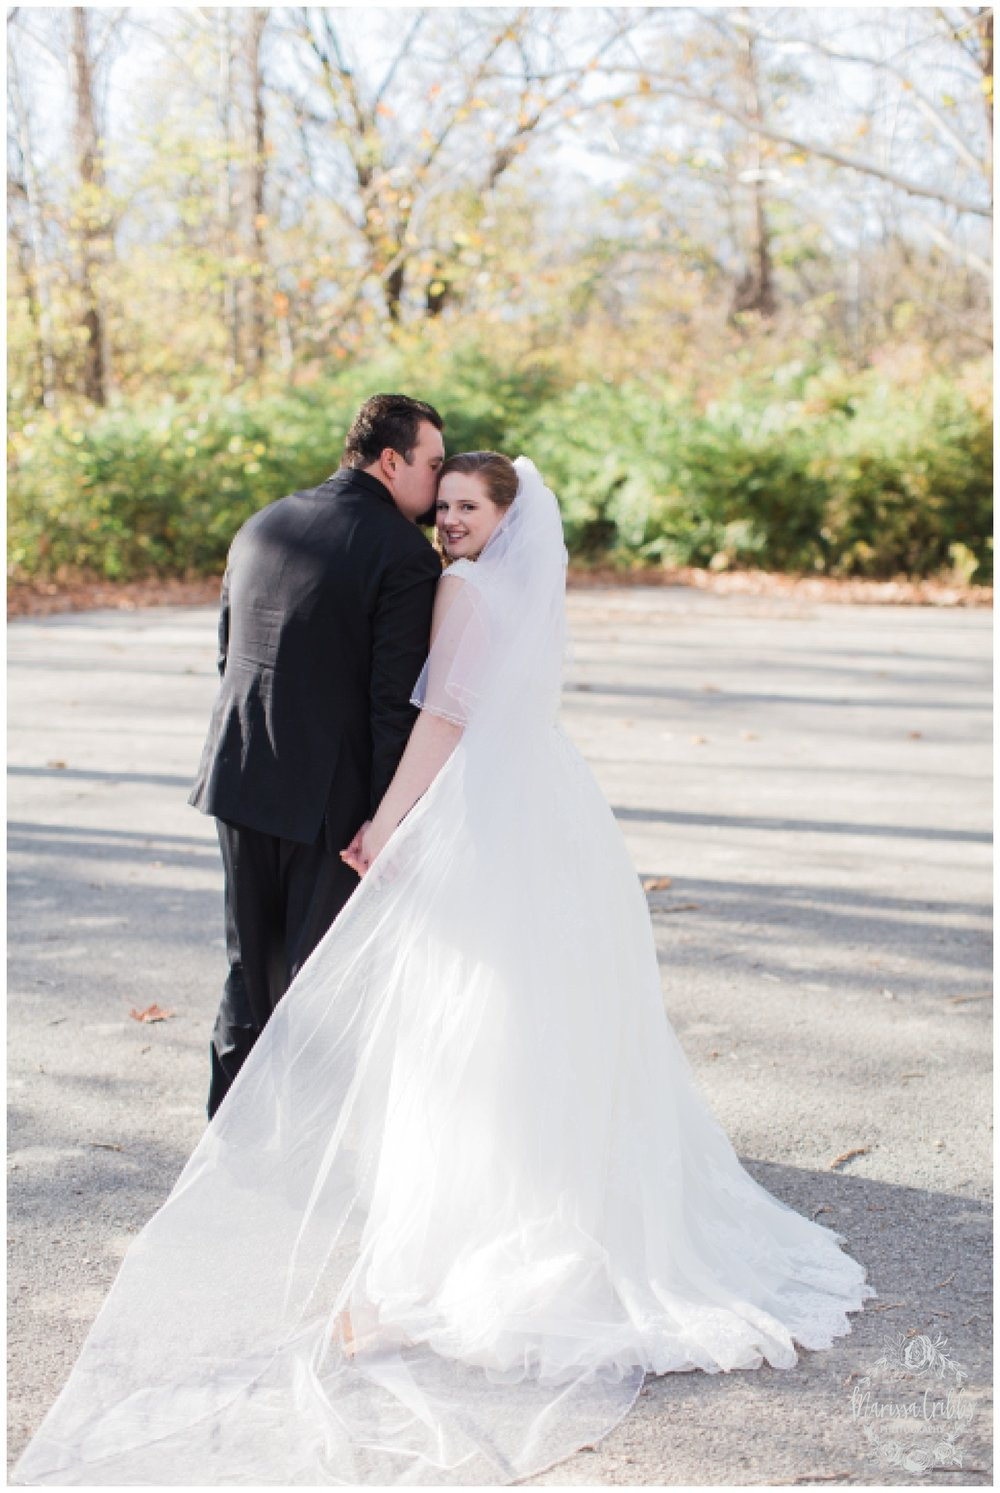 KELLY WEDDING | VENUE AT WILLOW CREEK | MARISSA CRIBBS PHOTOGRAPHY_3729.jpg